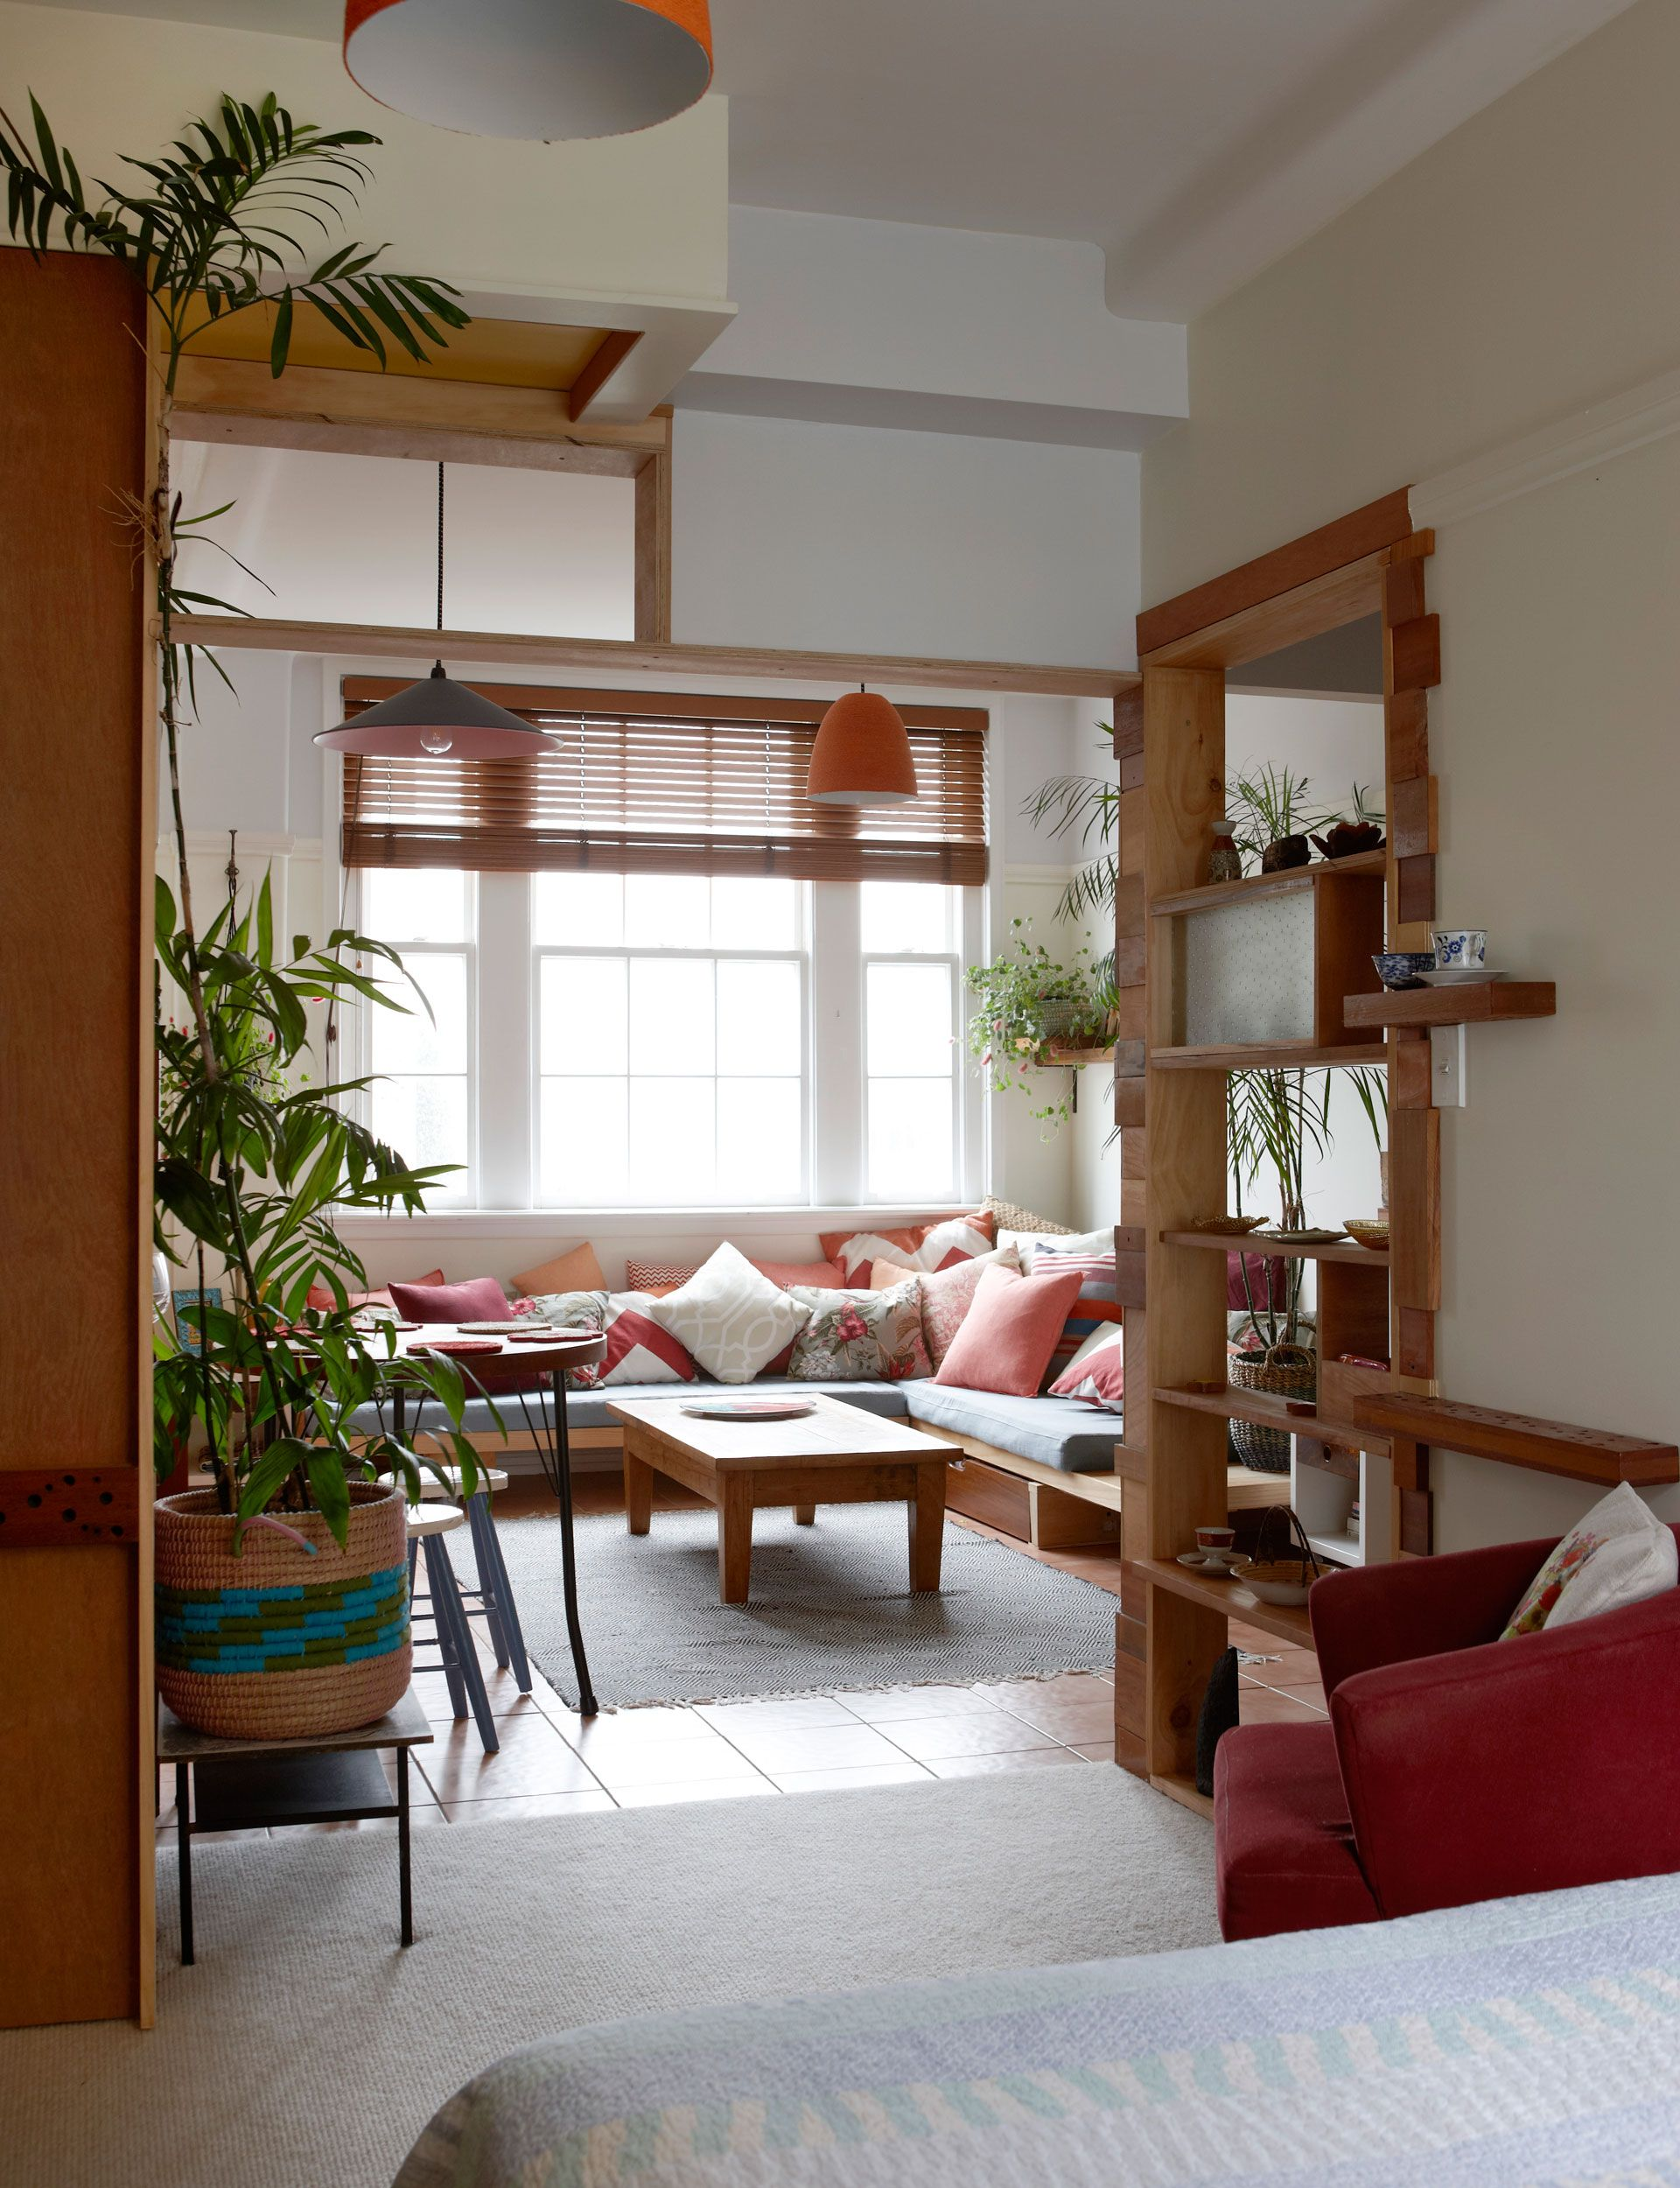 A Tiny Inner City Apartment Gets A Japanese Inspired Makeover